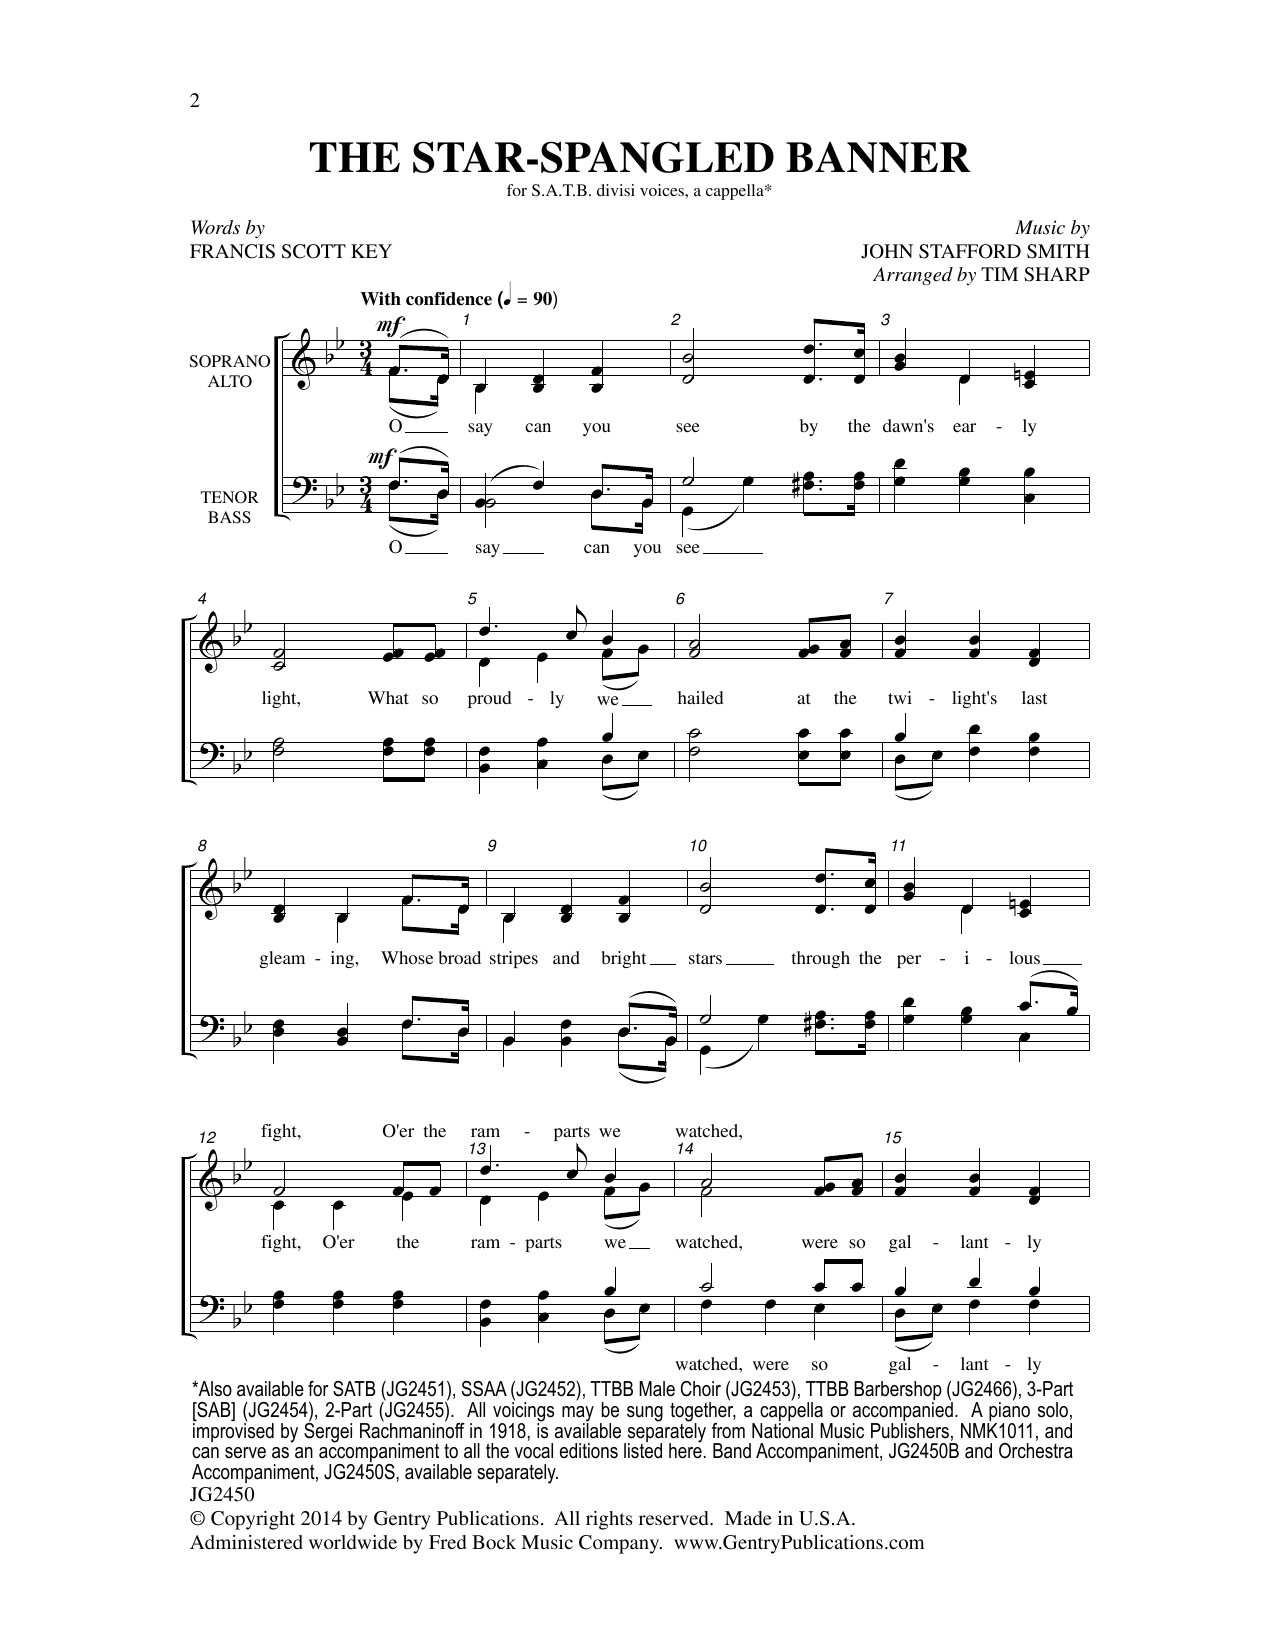 Tim Sharp The Star-Spangled Banner sheet music notes and chords. Download Printable PDF.